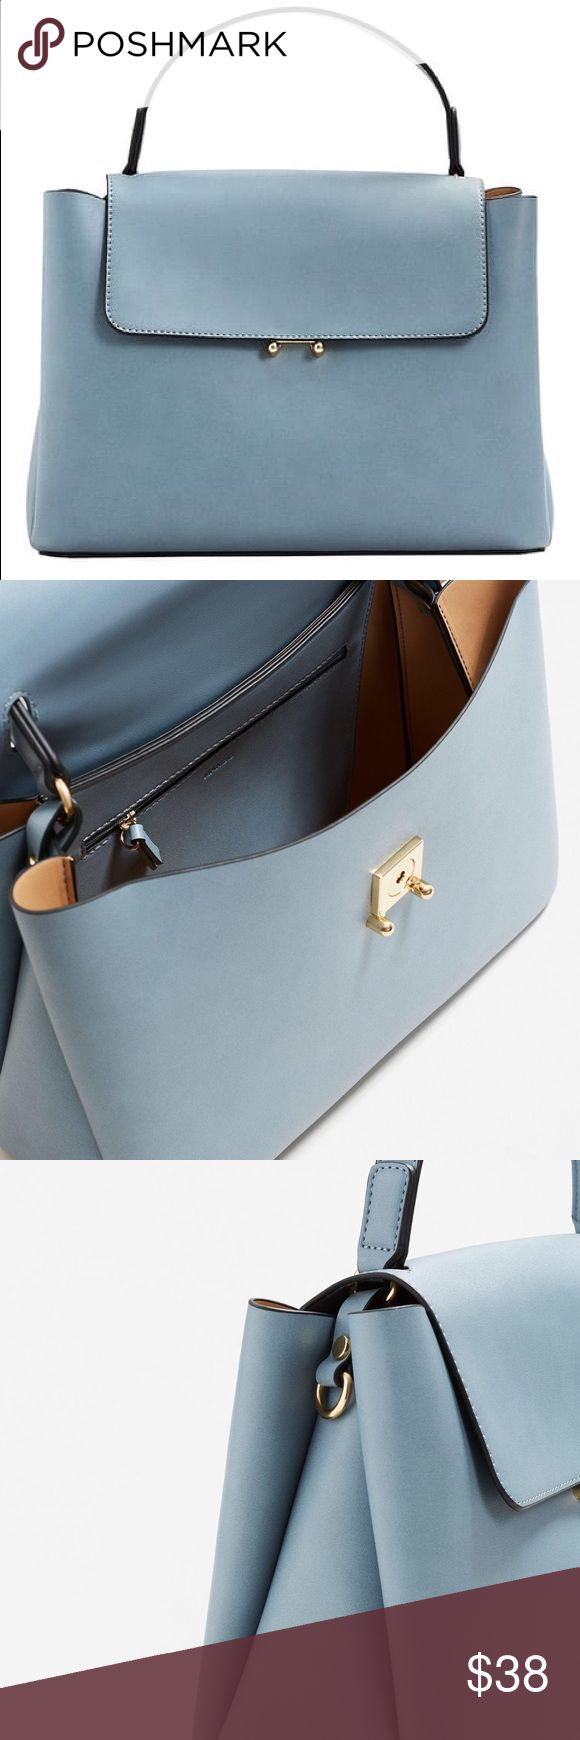 Sky blue city bag! Brand new and has the tag still! Sky blue. Not Zara, Mango. Mango and Zara are both Spaniard brands that are extremely similar. Sold out online. :) Thanks for looking! Zara Bags Satchels